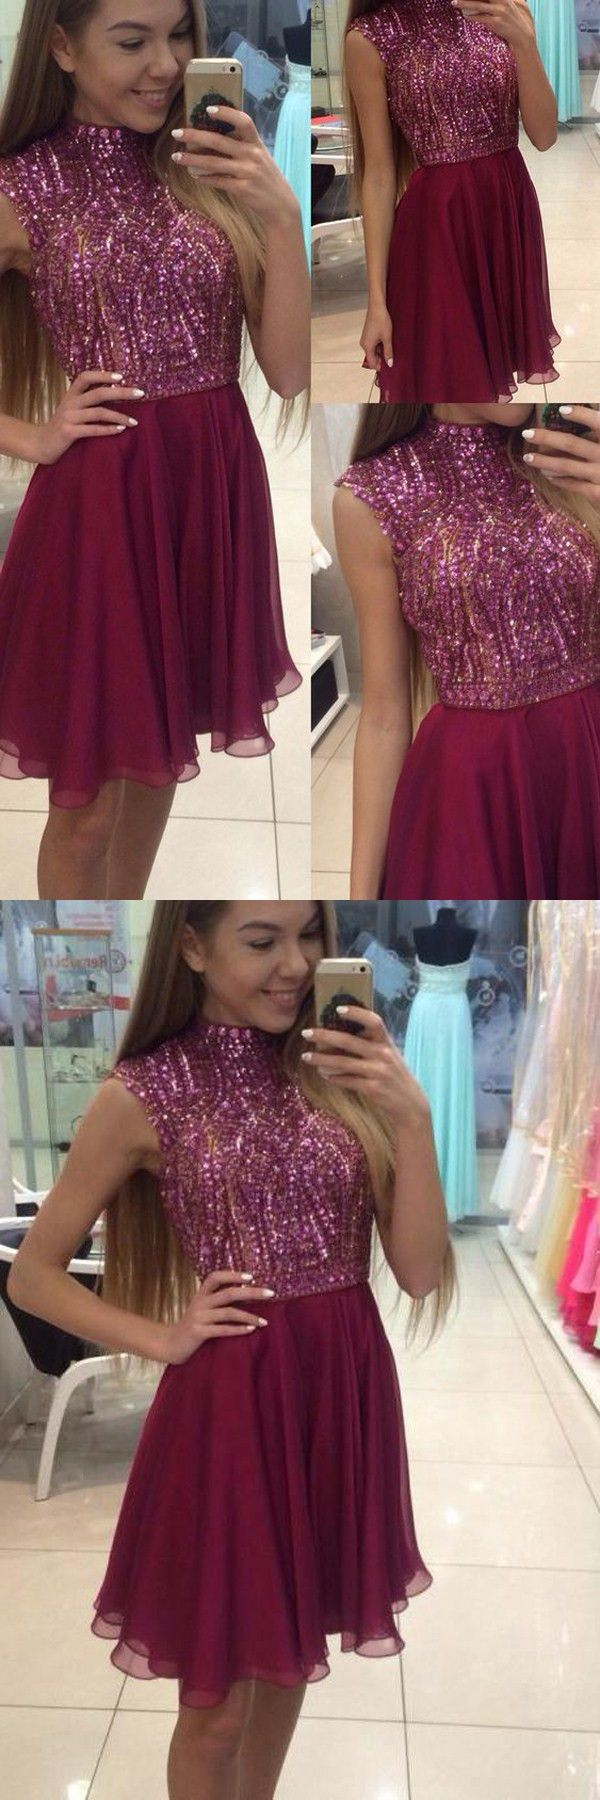 2016 homecoming dresses,homecoming dresses,sparkle homecoming dresses,halter homecoming dresses,sparkle prom dresses,maroon homecoming dresses